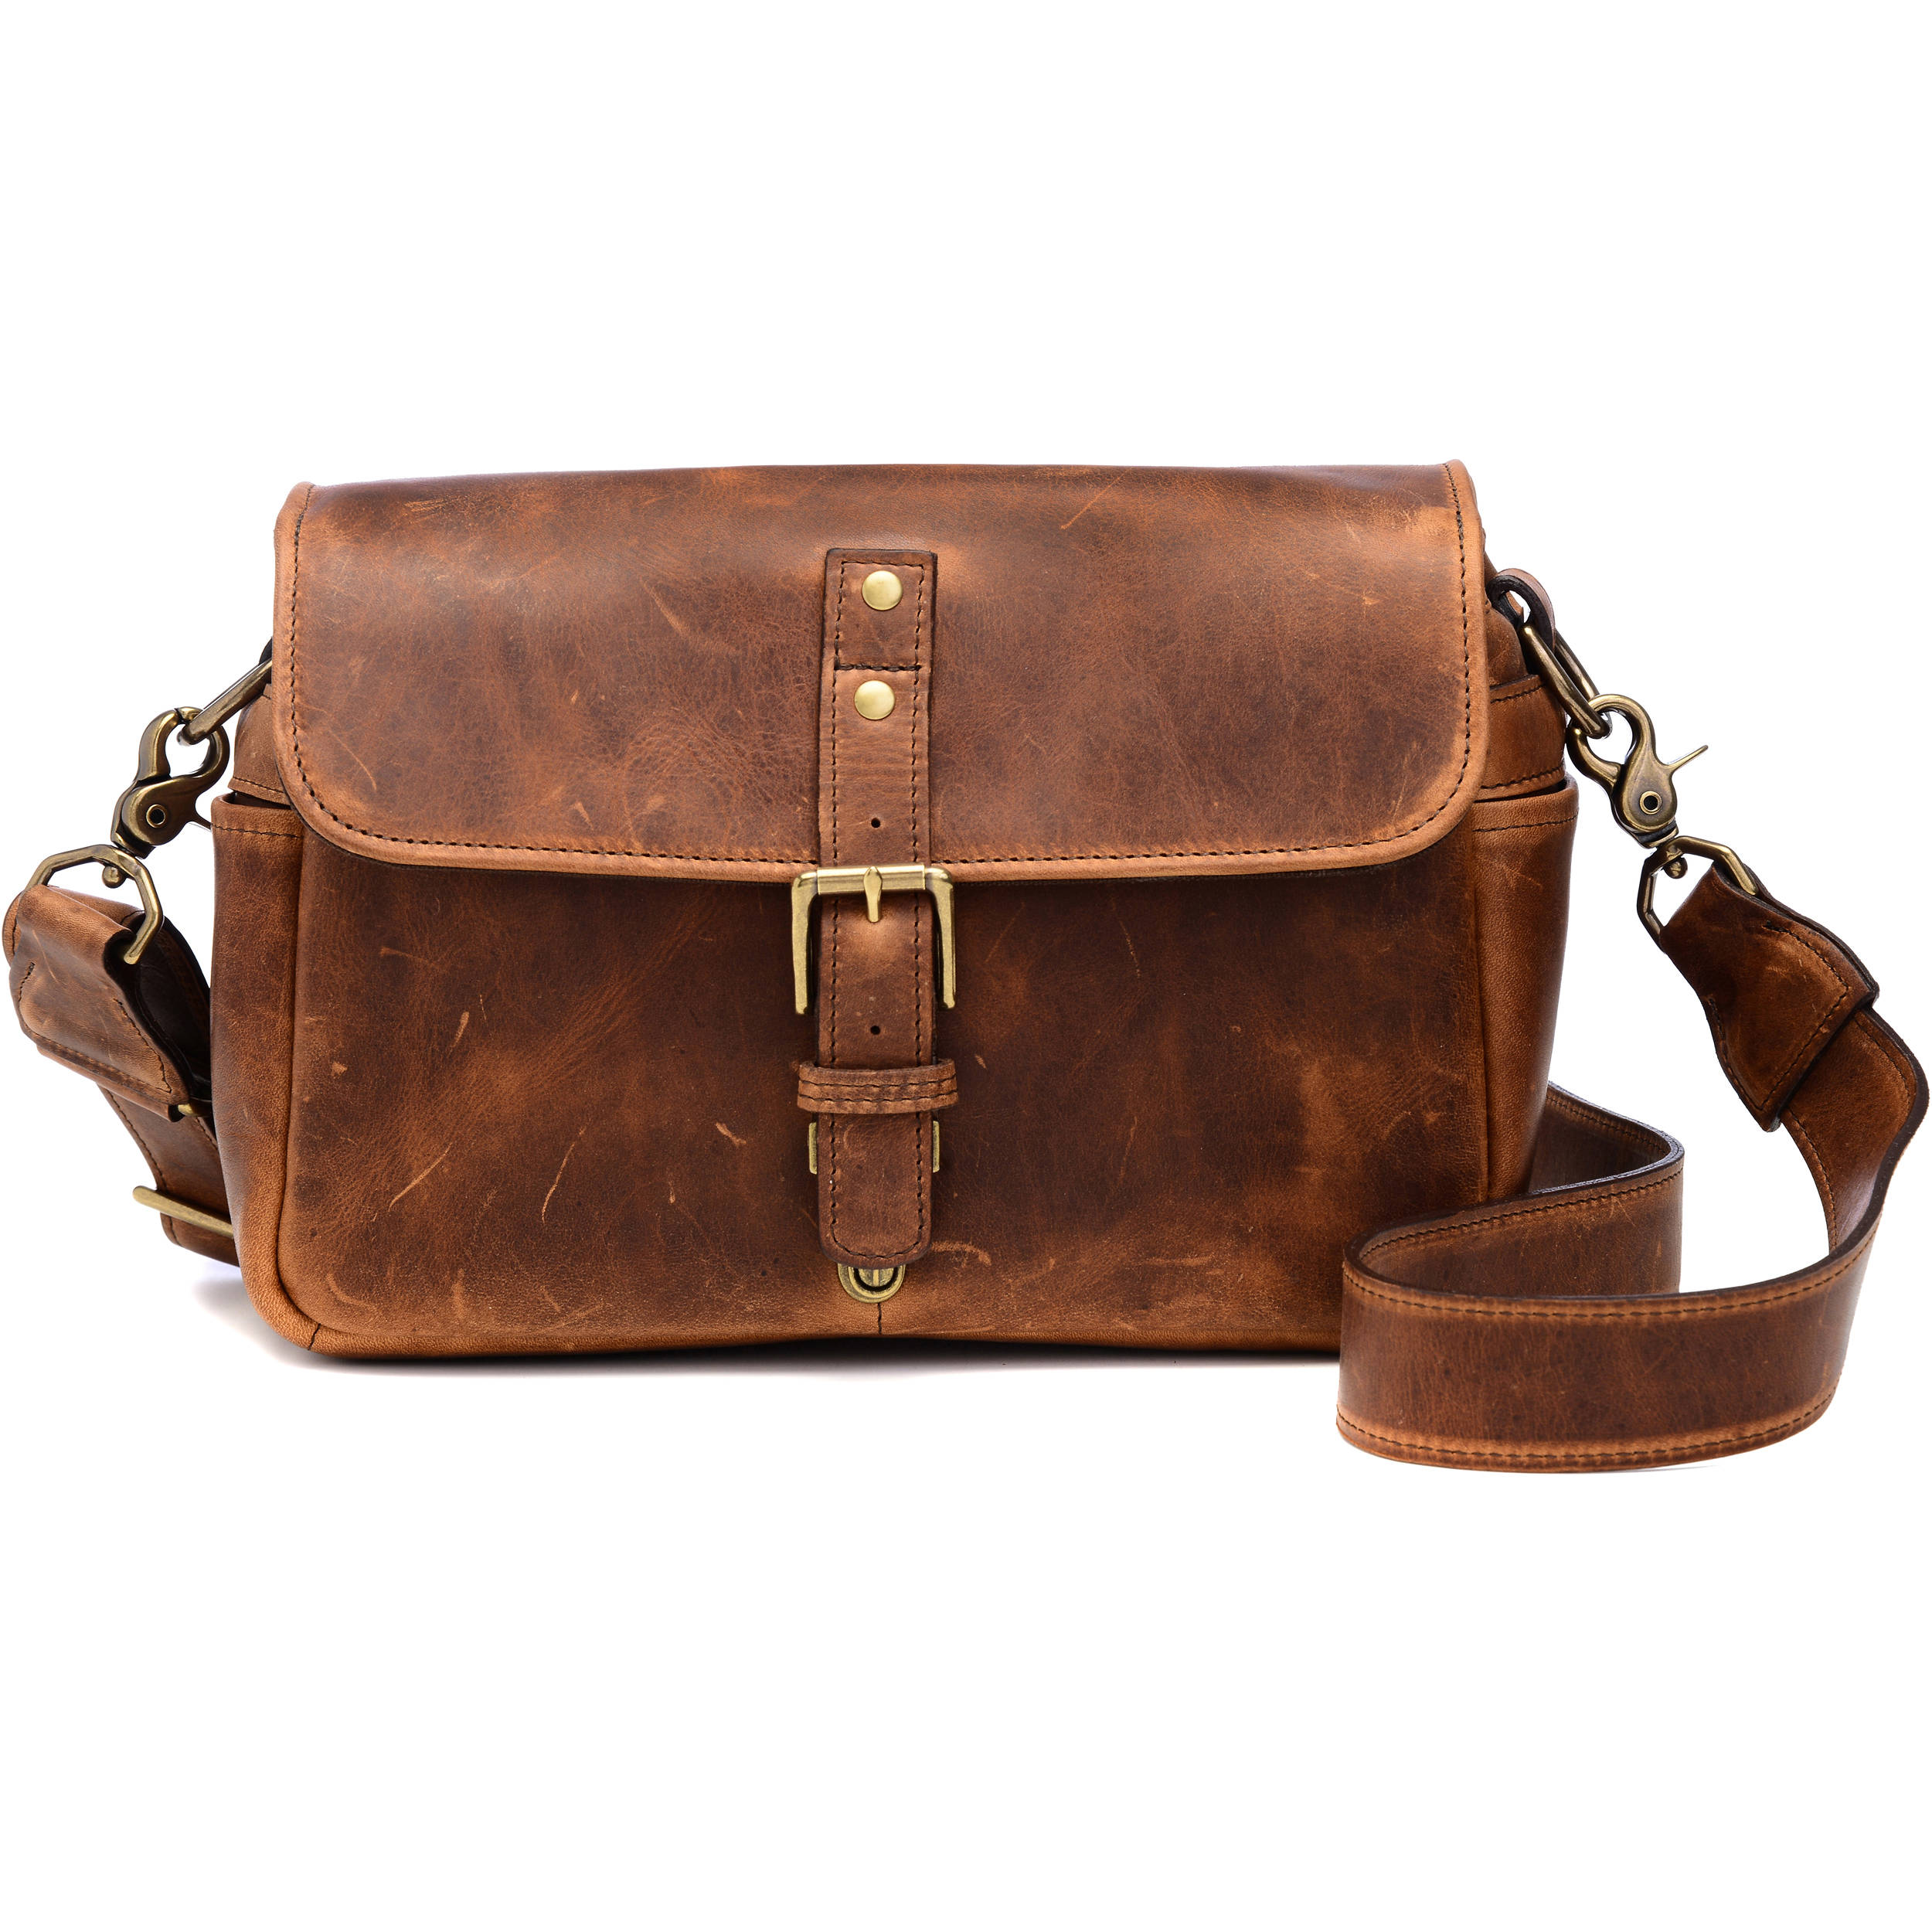 Ona Bowery Camera Bag Leather Antique Cognac